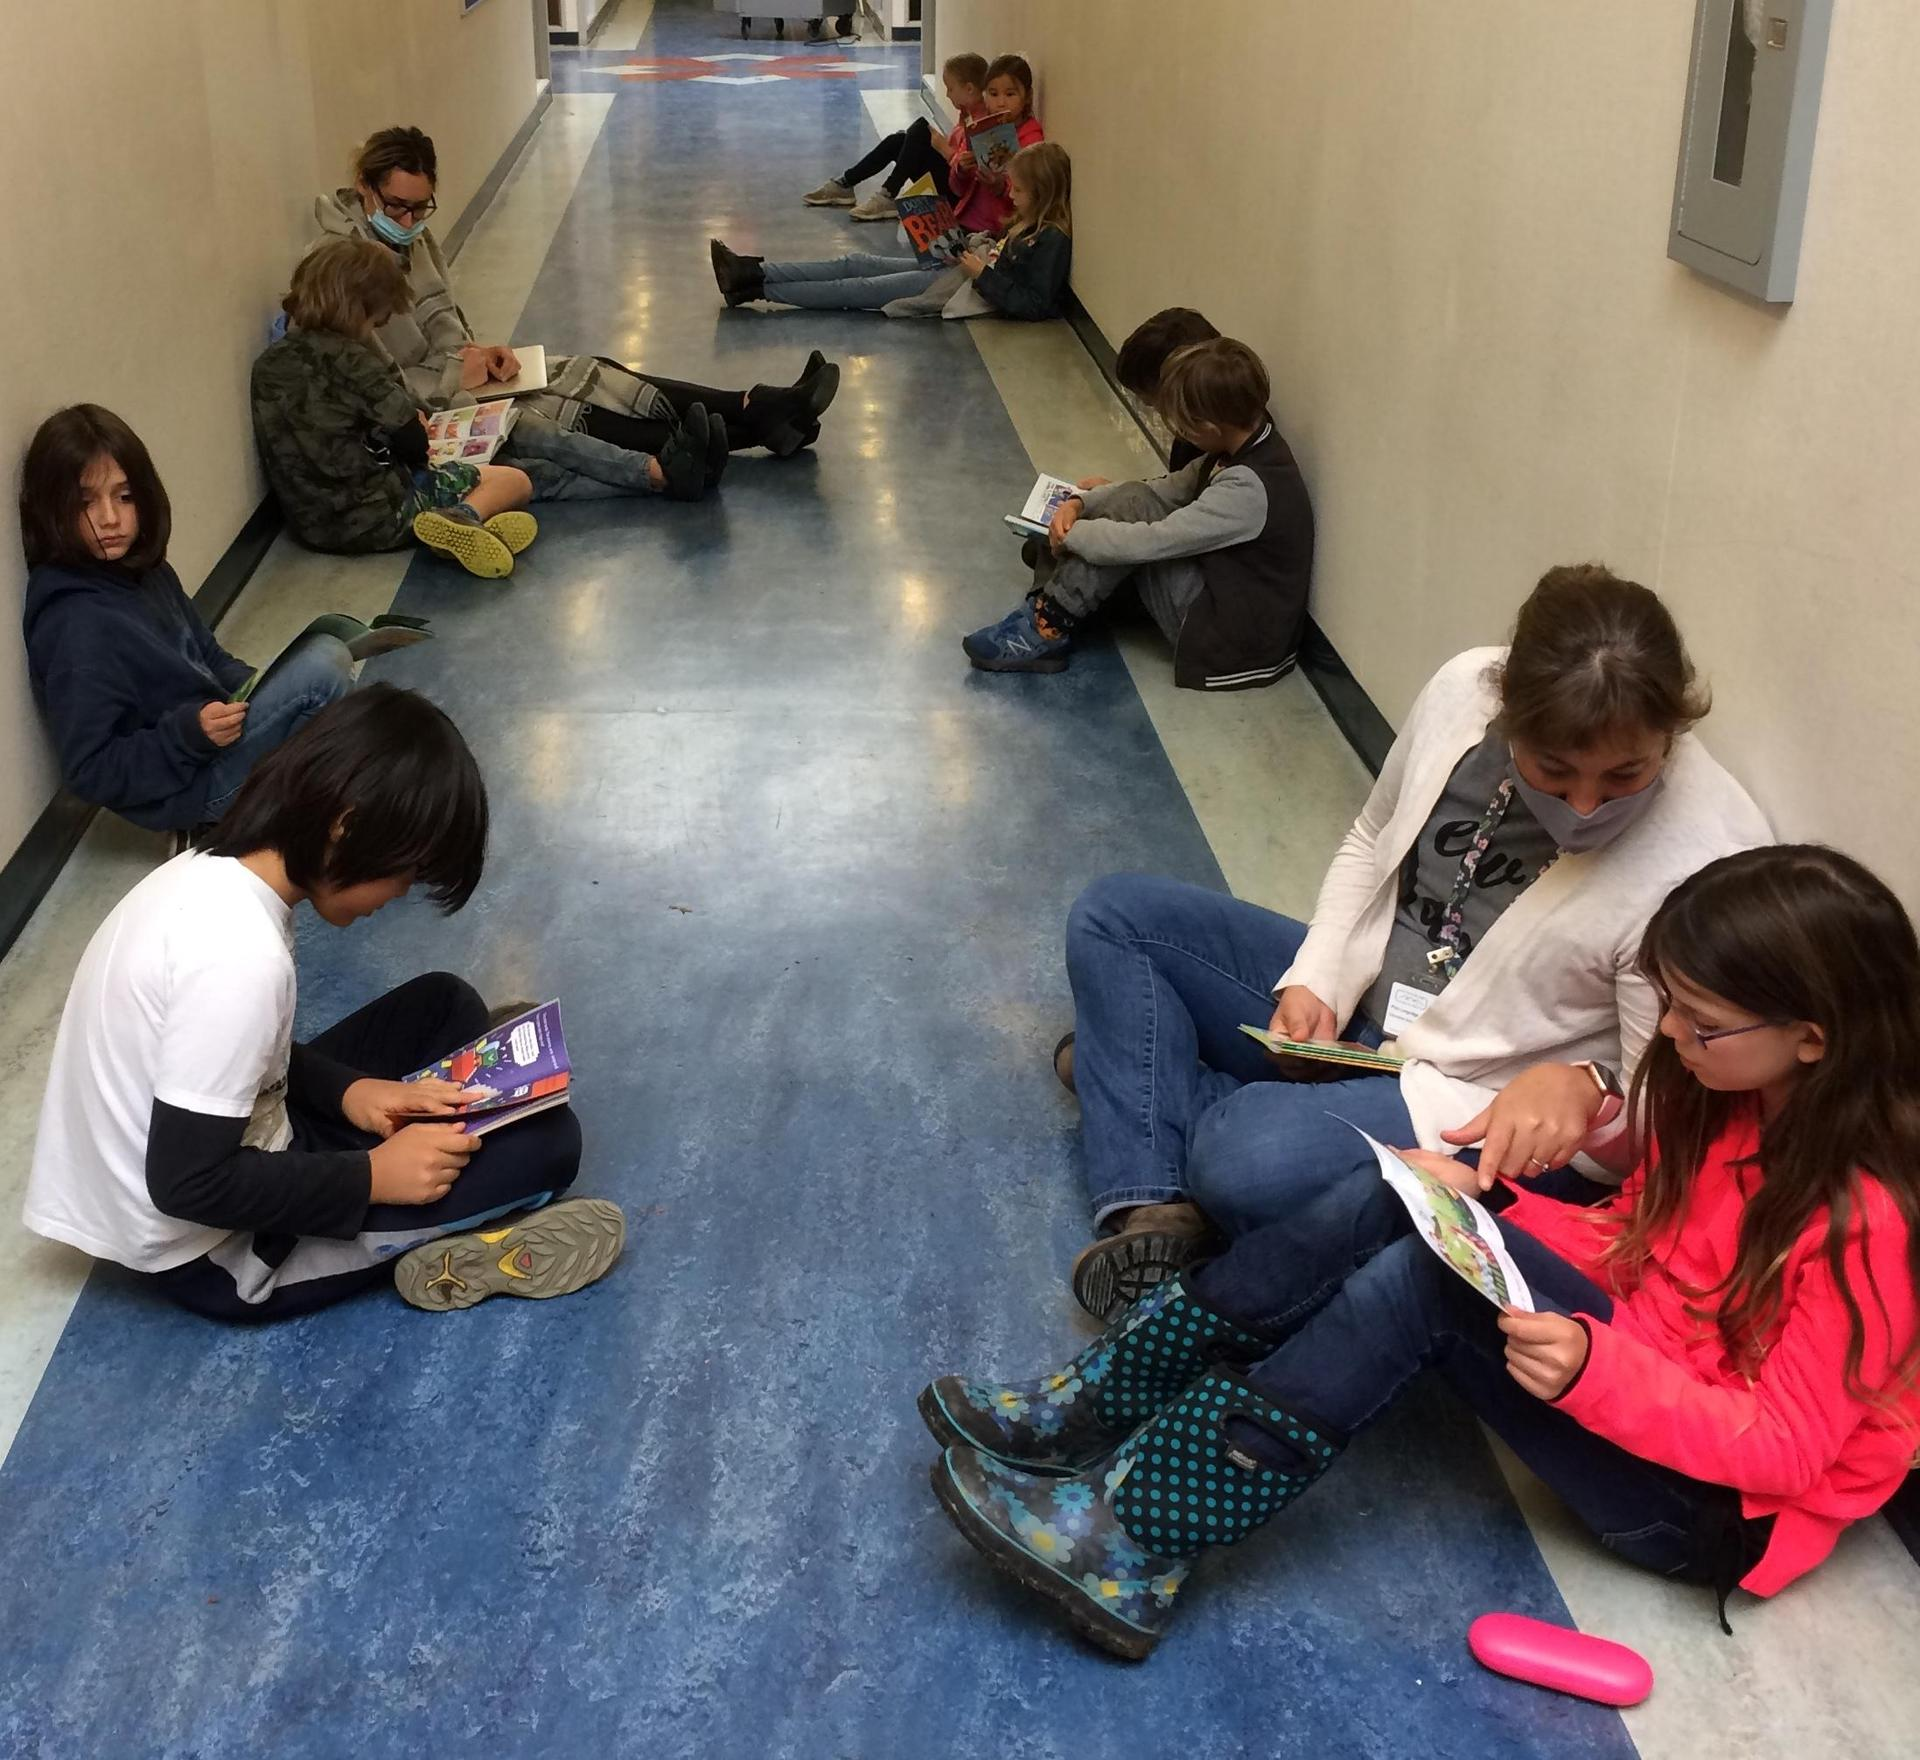 reading in the hallway